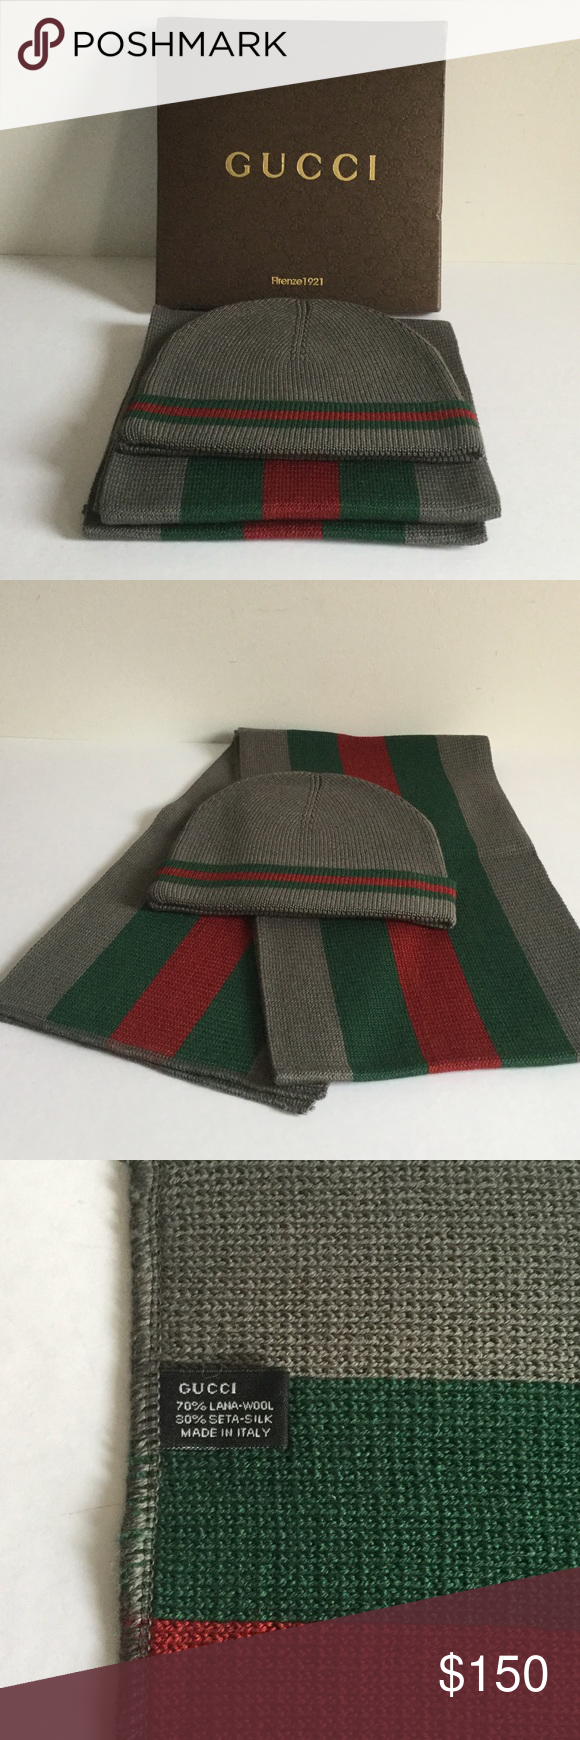 Gucci Hat   Scarf Set New in Box Sz XL This set was my Christmas ... b836585f640